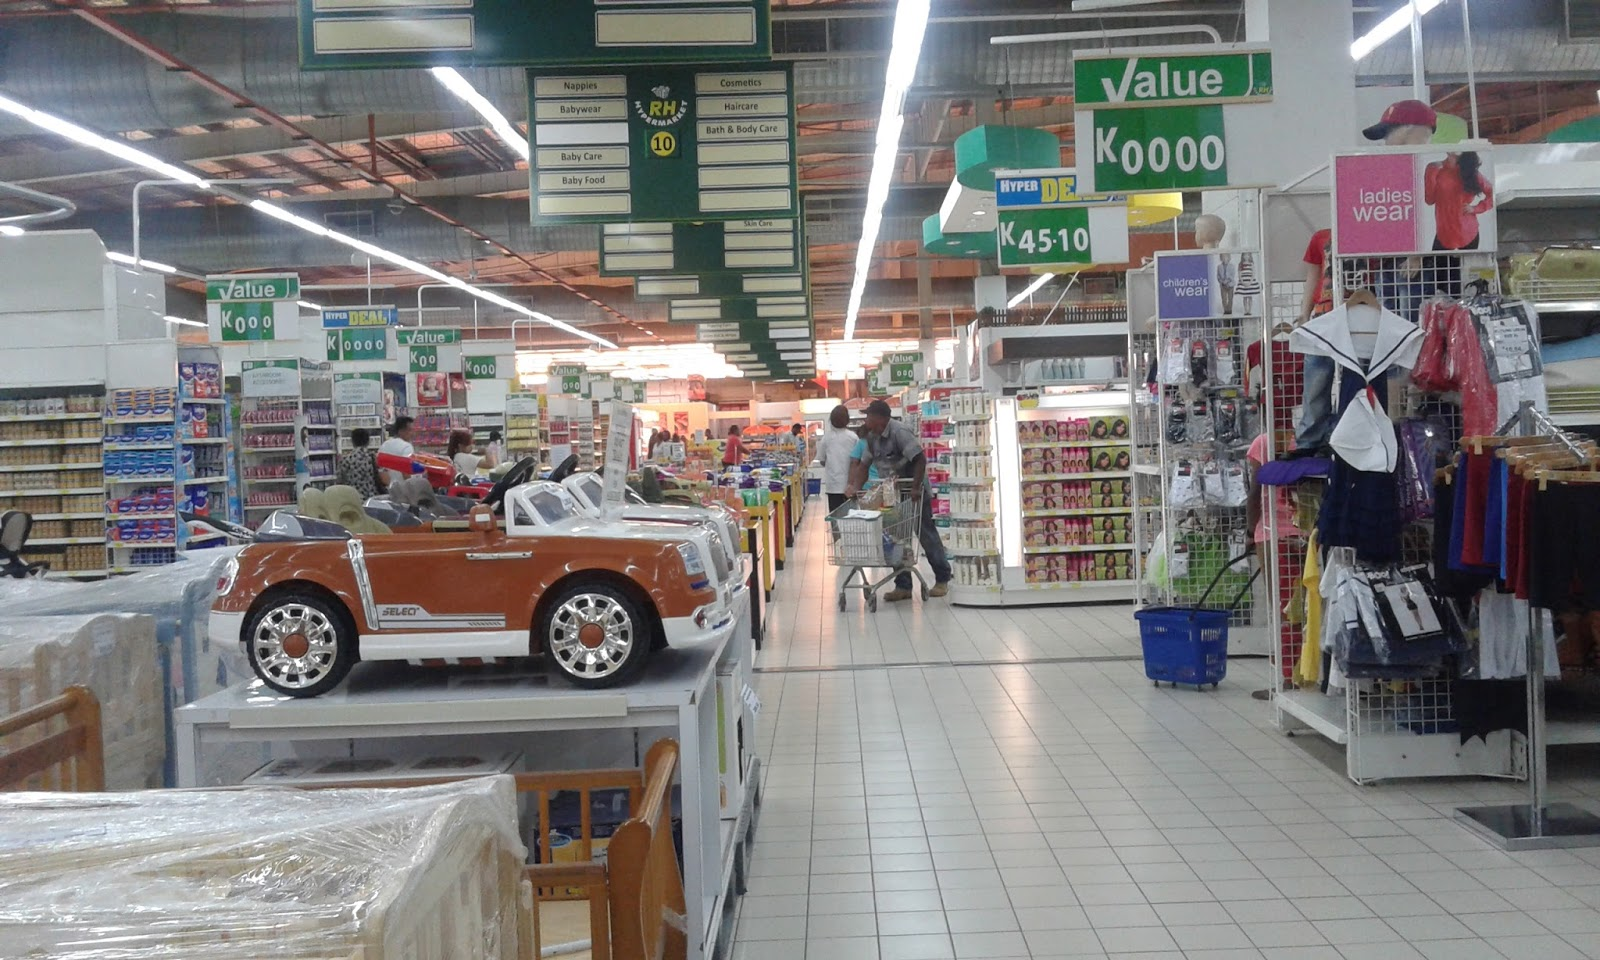 Vision City Port Moresby, Vision City in Port Moresby safe for shopping: Security | One ...